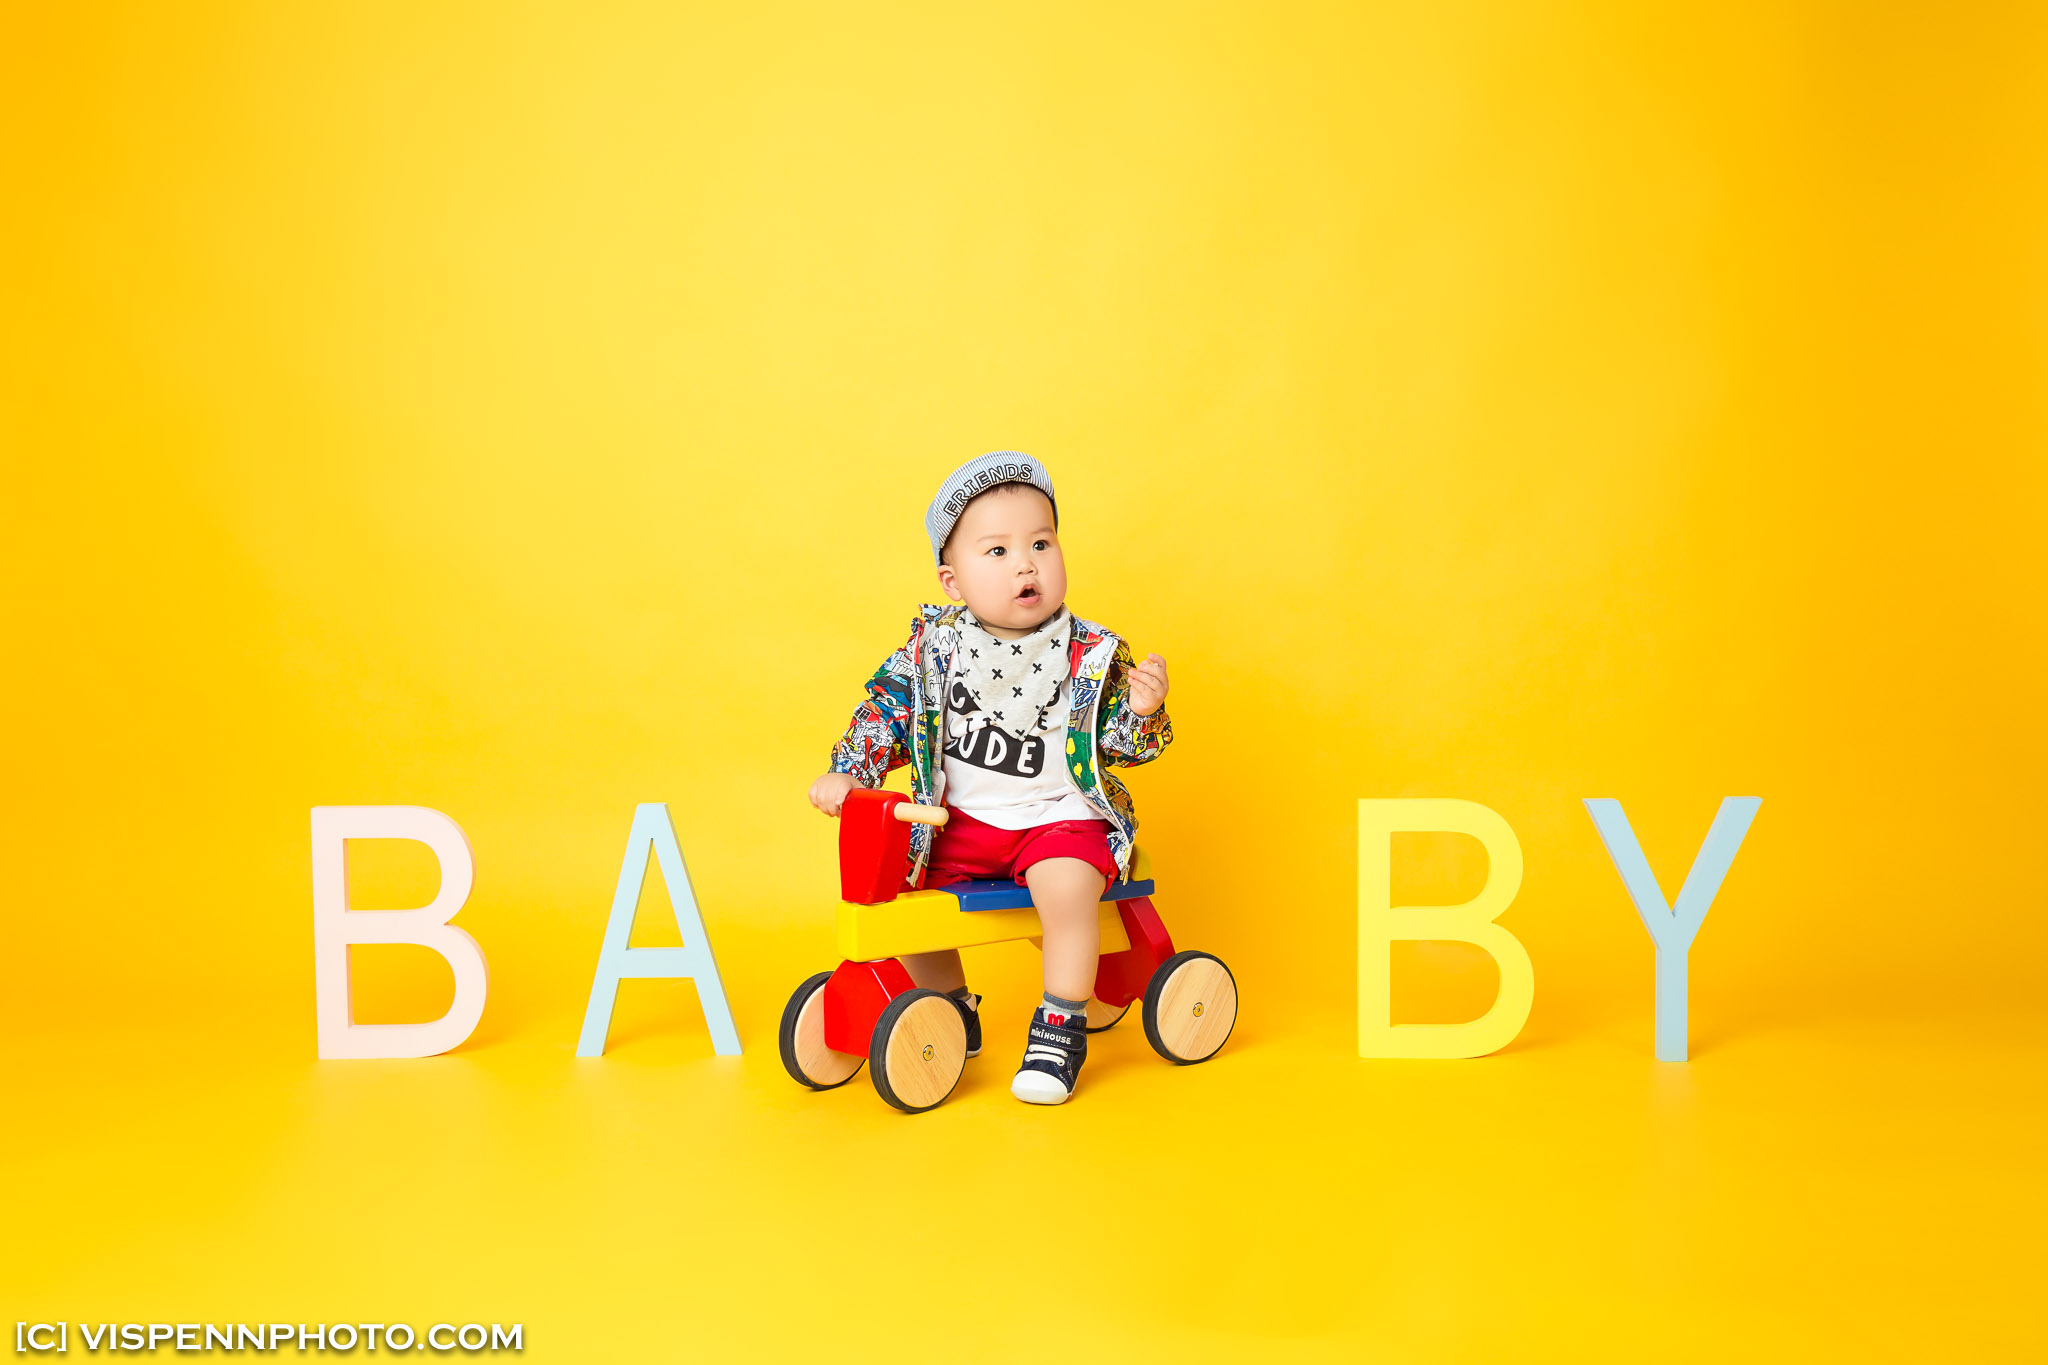 Melbourne Newborn Baby Family Photo BaoBao VISPENN 墨尔本 儿童 宝宝 百天照 满月照 孕妇照 全家福 KIDS YukiWU 2388 VISPENN